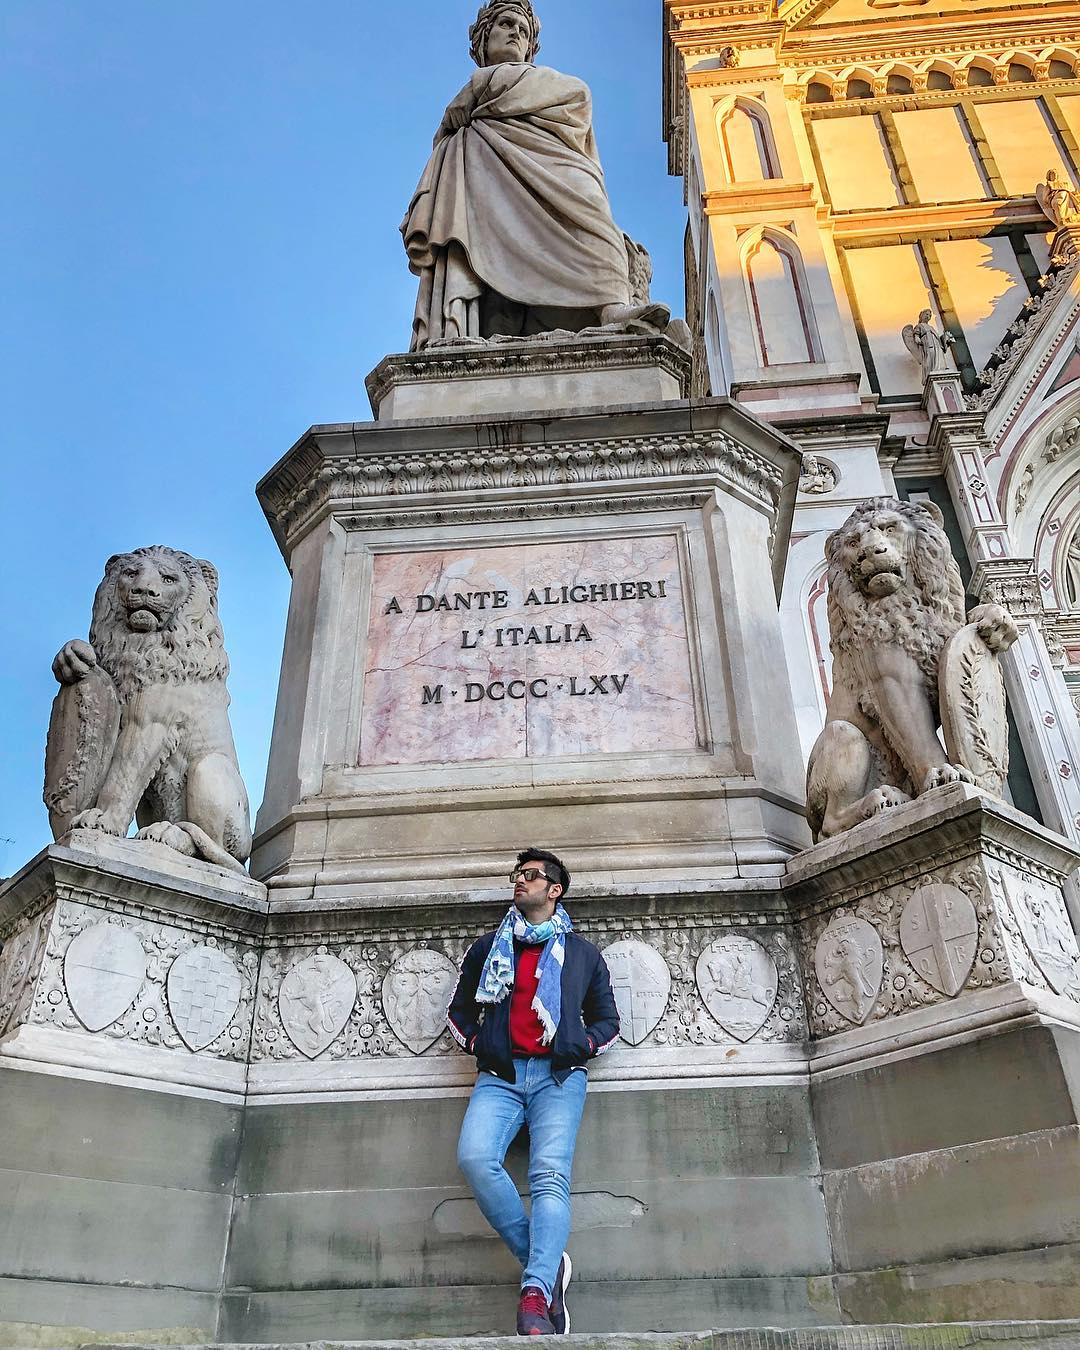 Honeymoon Continues - New Awesome Photos of Aiman and Muneeb in Italy